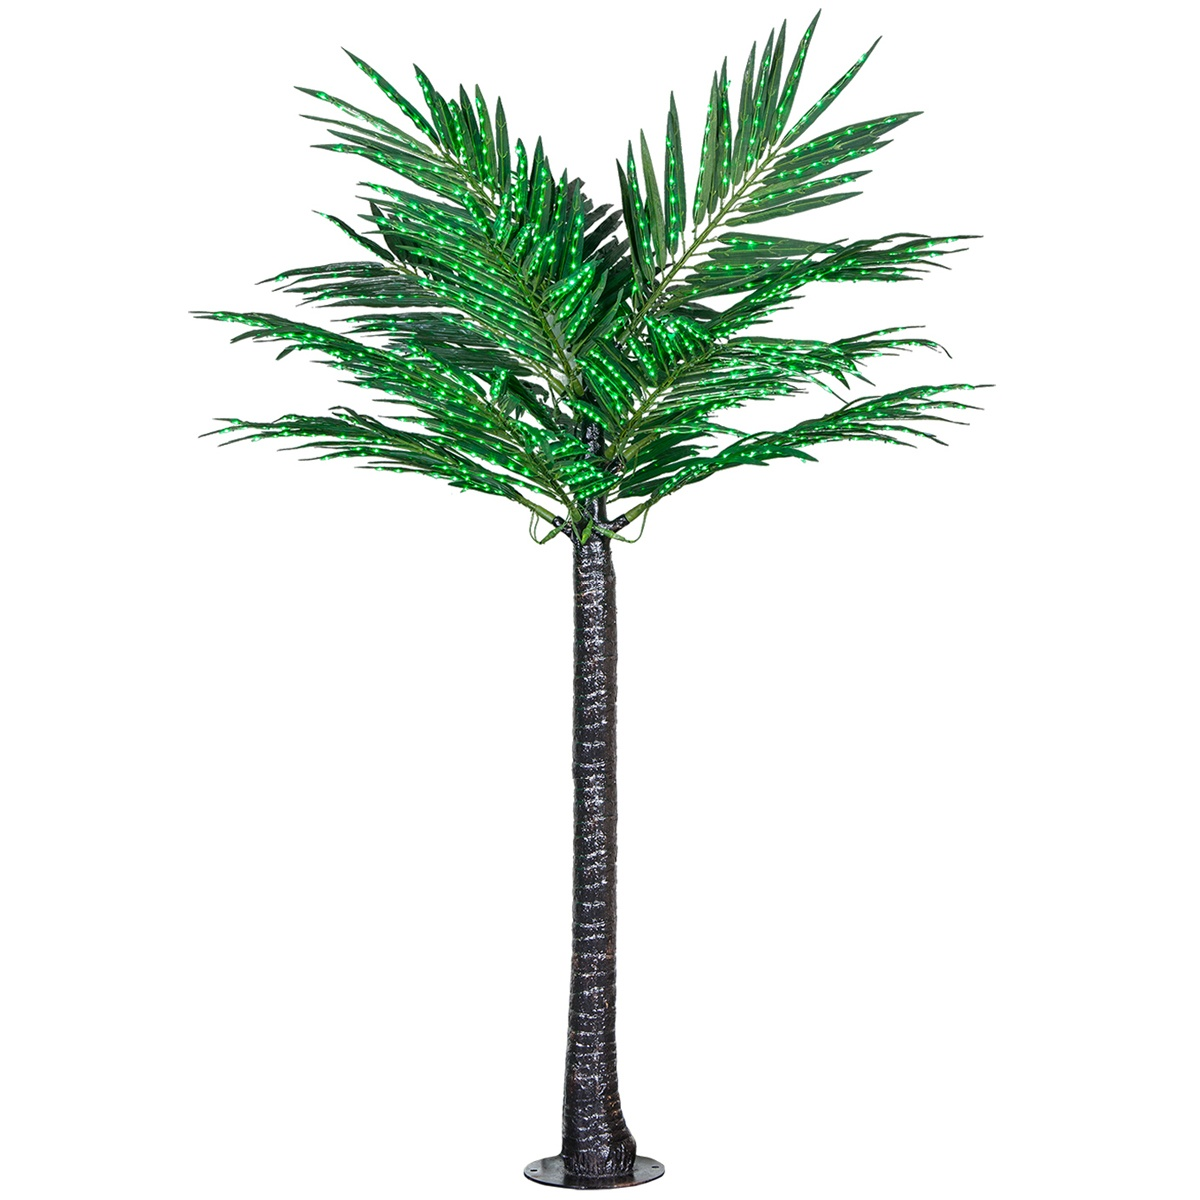 8' LED Deluxe Commercial Lighted Palm